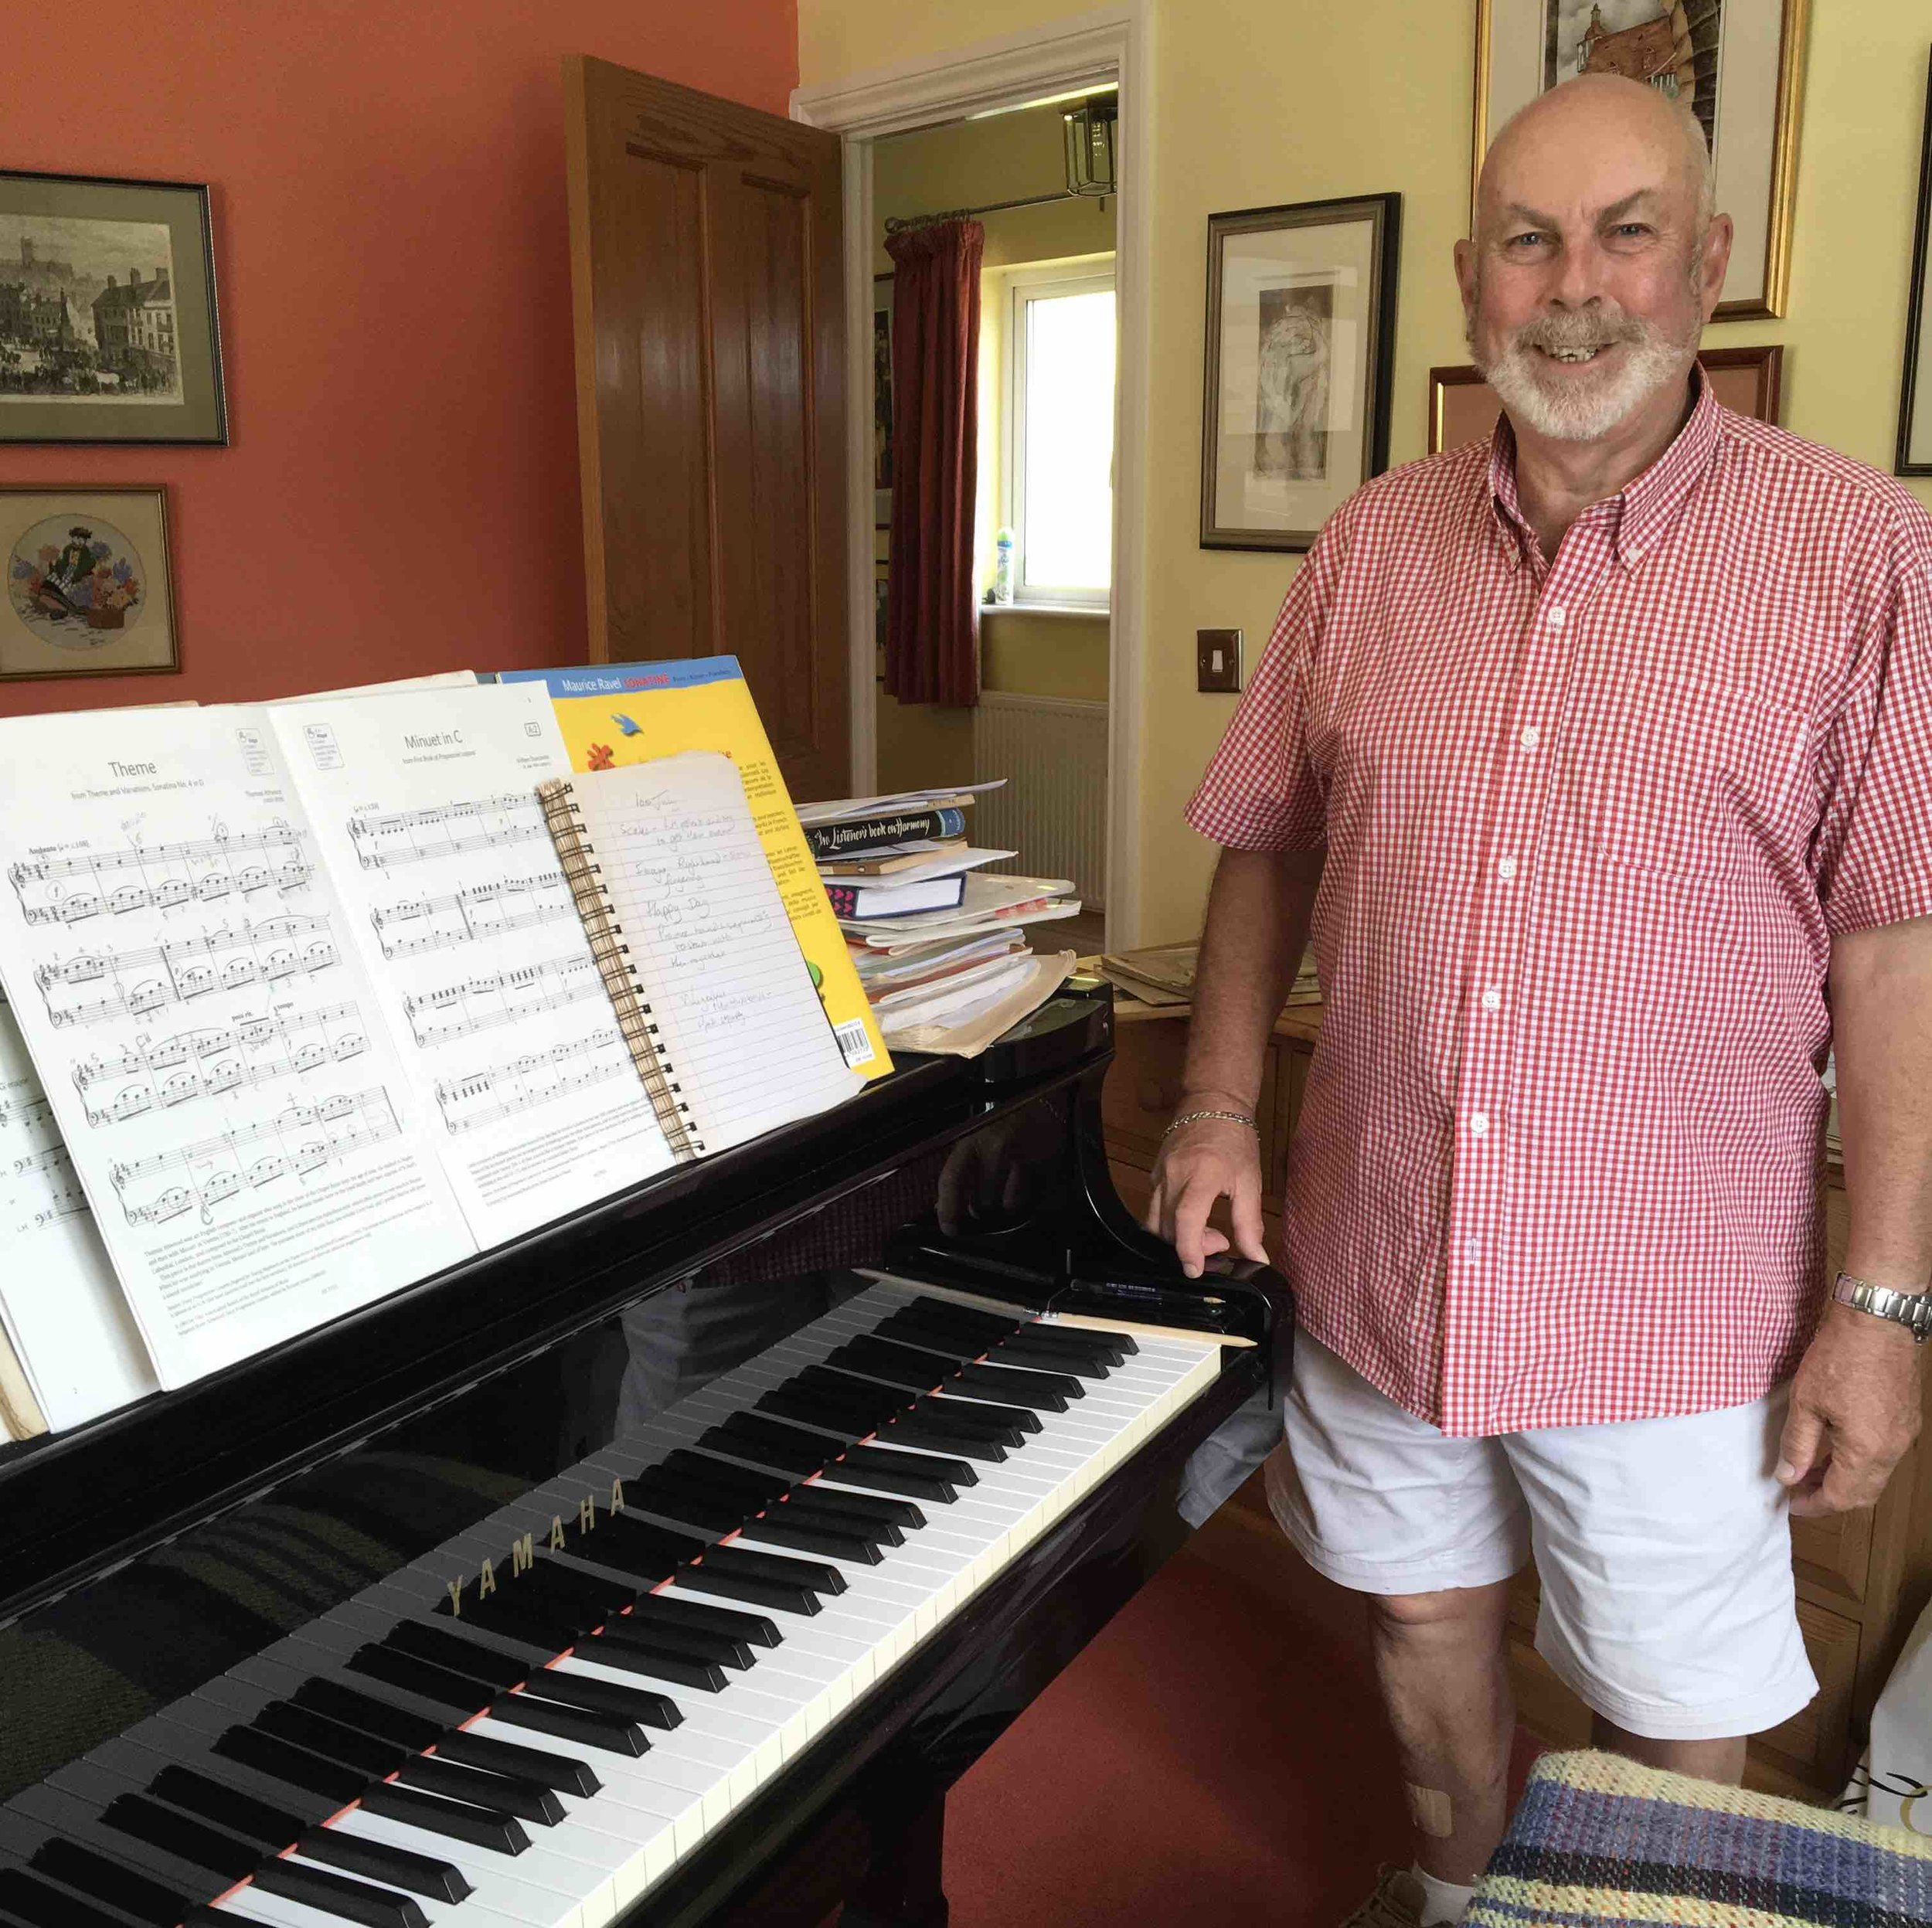 Piano teacher - David - is our fist piano teacher in Peacehaven and is much sought after. A student of John Lill's he has worked with the best. Having taught within several schools over his 35 years as their resident piano teacher, he has amassed a wealth of knowledge and experience.